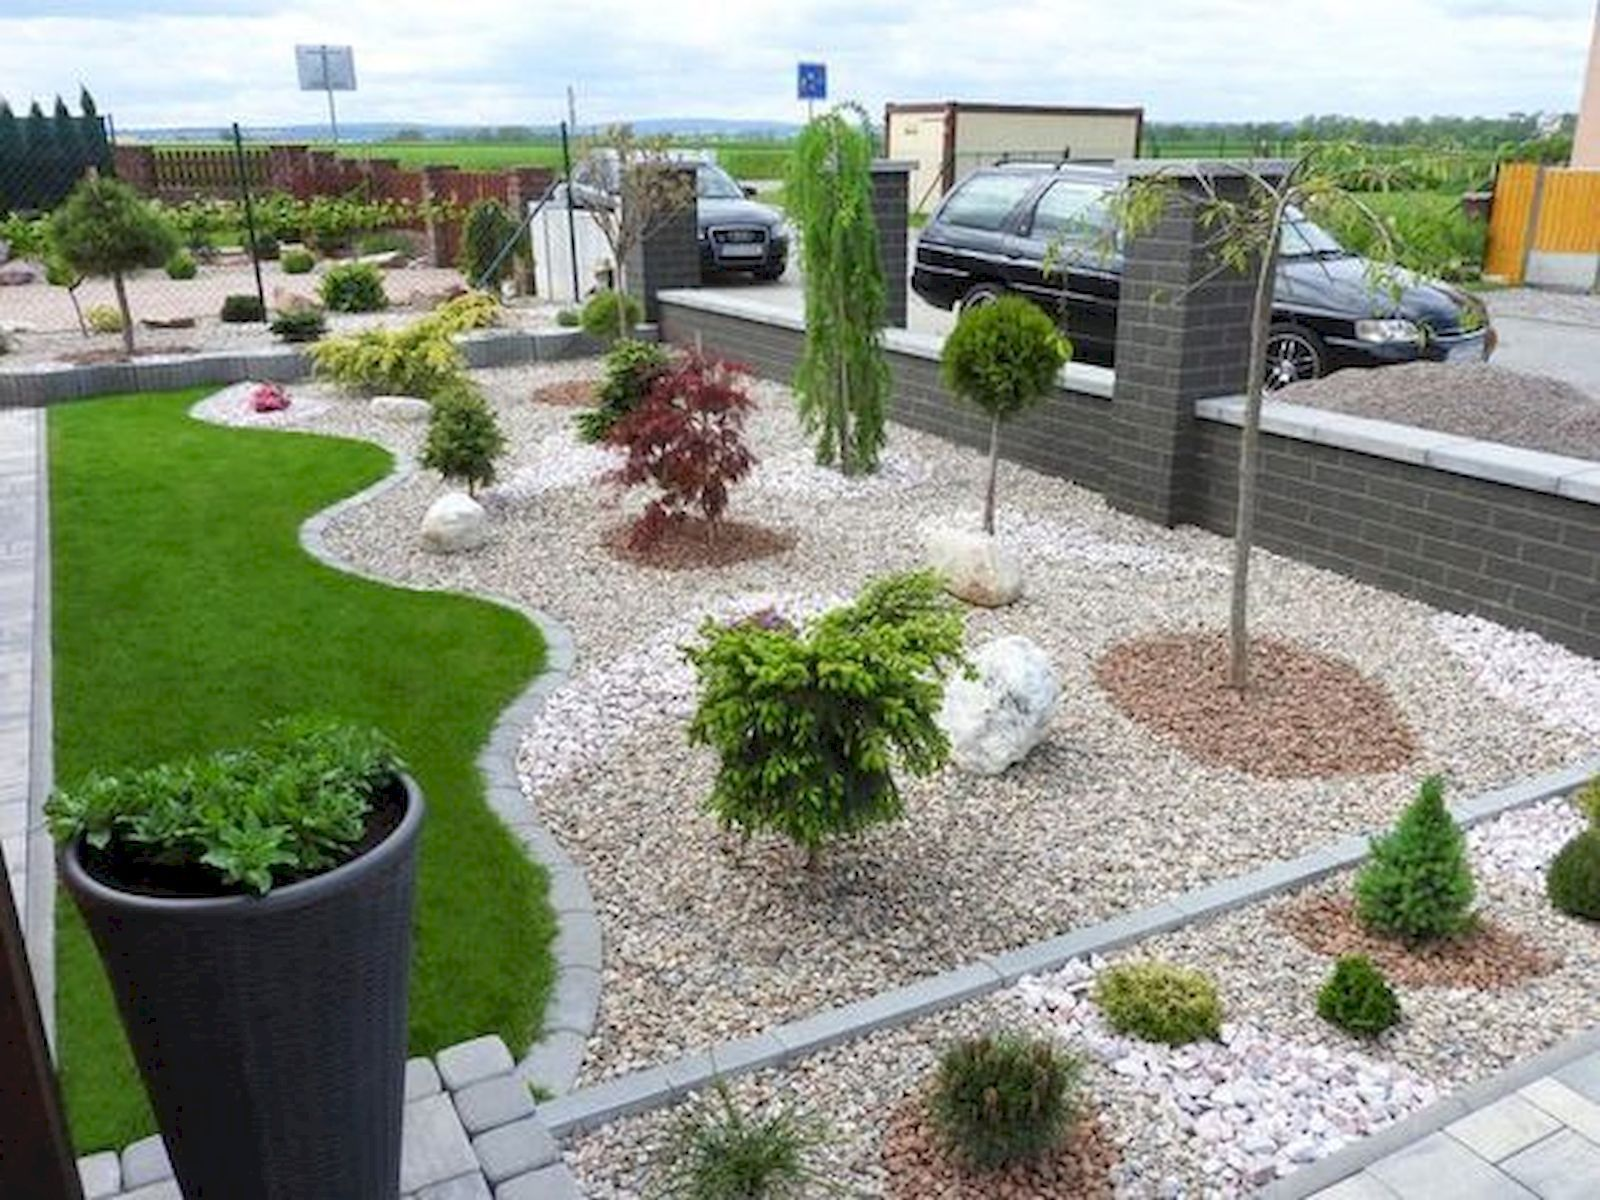 90 Simple and Beautiful Front Yard Landscaping Ideas on A Budget (69) - LivingMarch.com #landscapingfrontyard